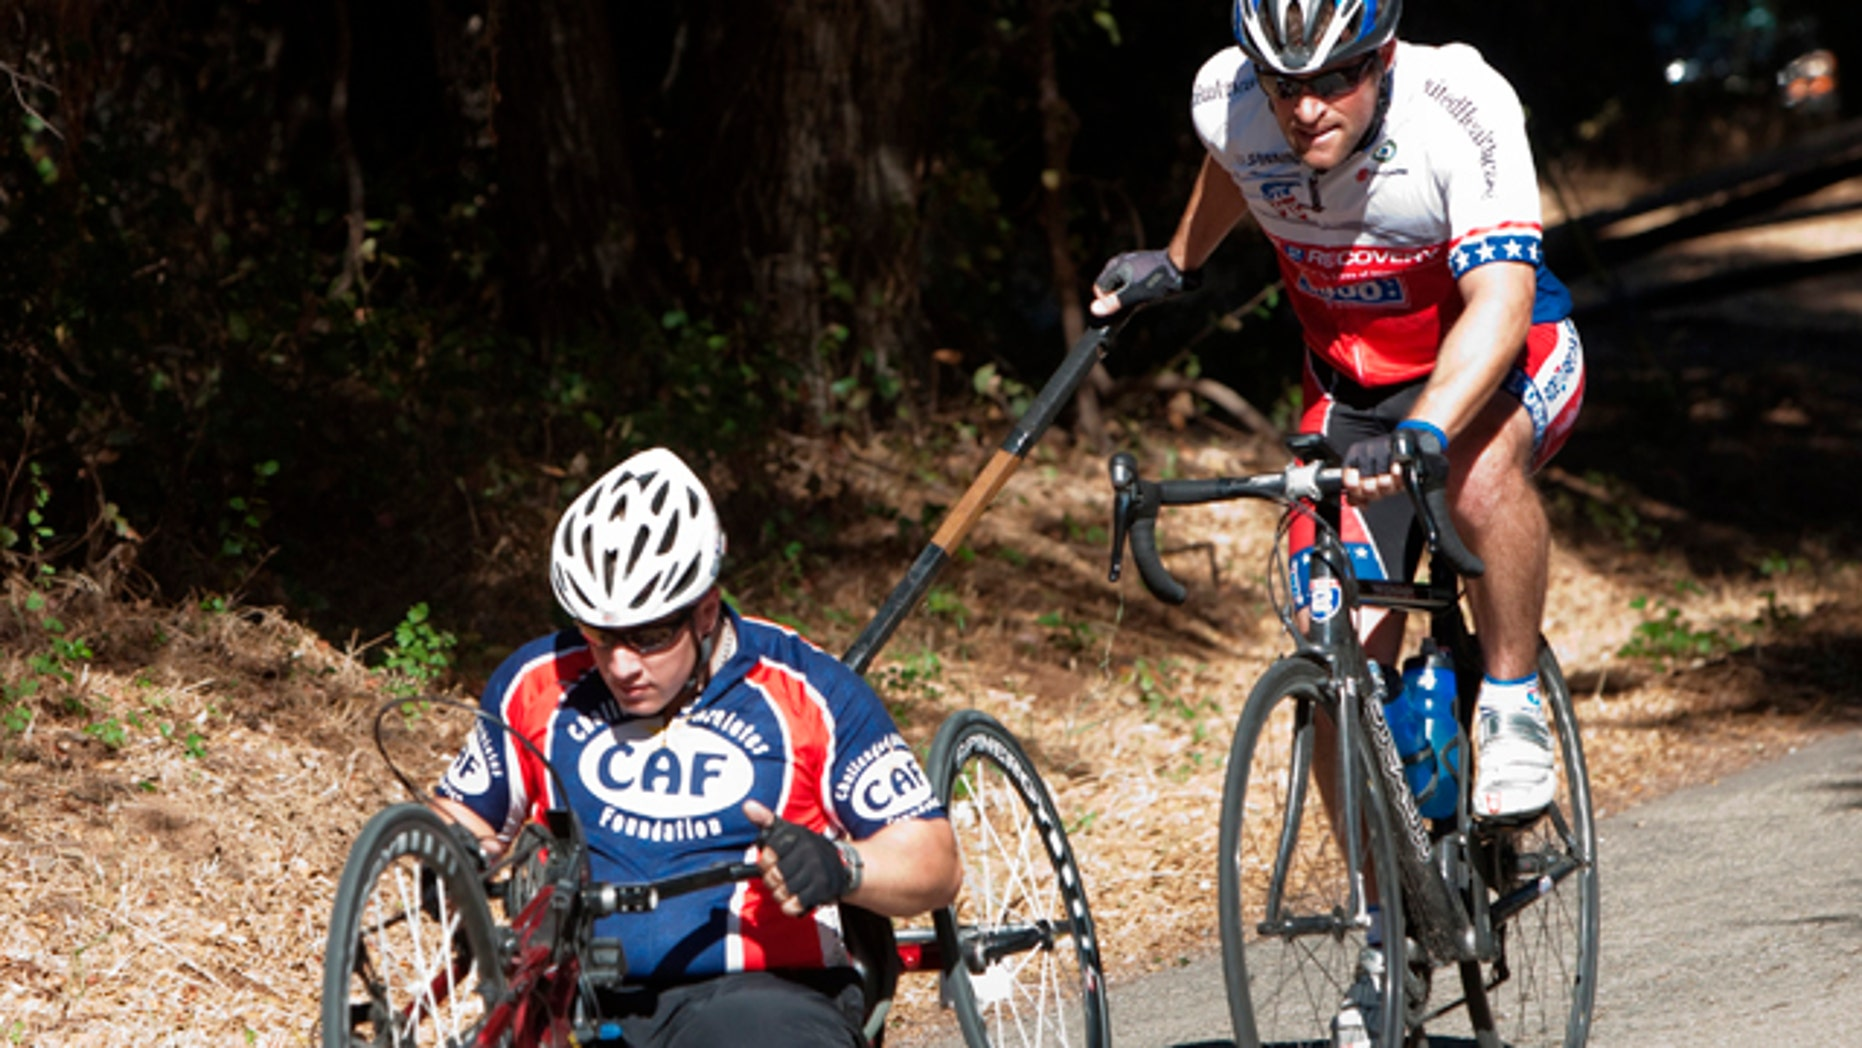 This handout photo, taken in October 2010, provided by Ride 2 Recovery, shows Clay Hunt, right, with Nate Hunt in the 2010 California Ride. Hunt epitomized a vibrant Iraq veteran that he represented one in a public service announcement that reminded veterans they weren't alone. On March 31, Hunt bolted himself in his Houston apartment and shot himself. (AP/Ride 2 Recovery)